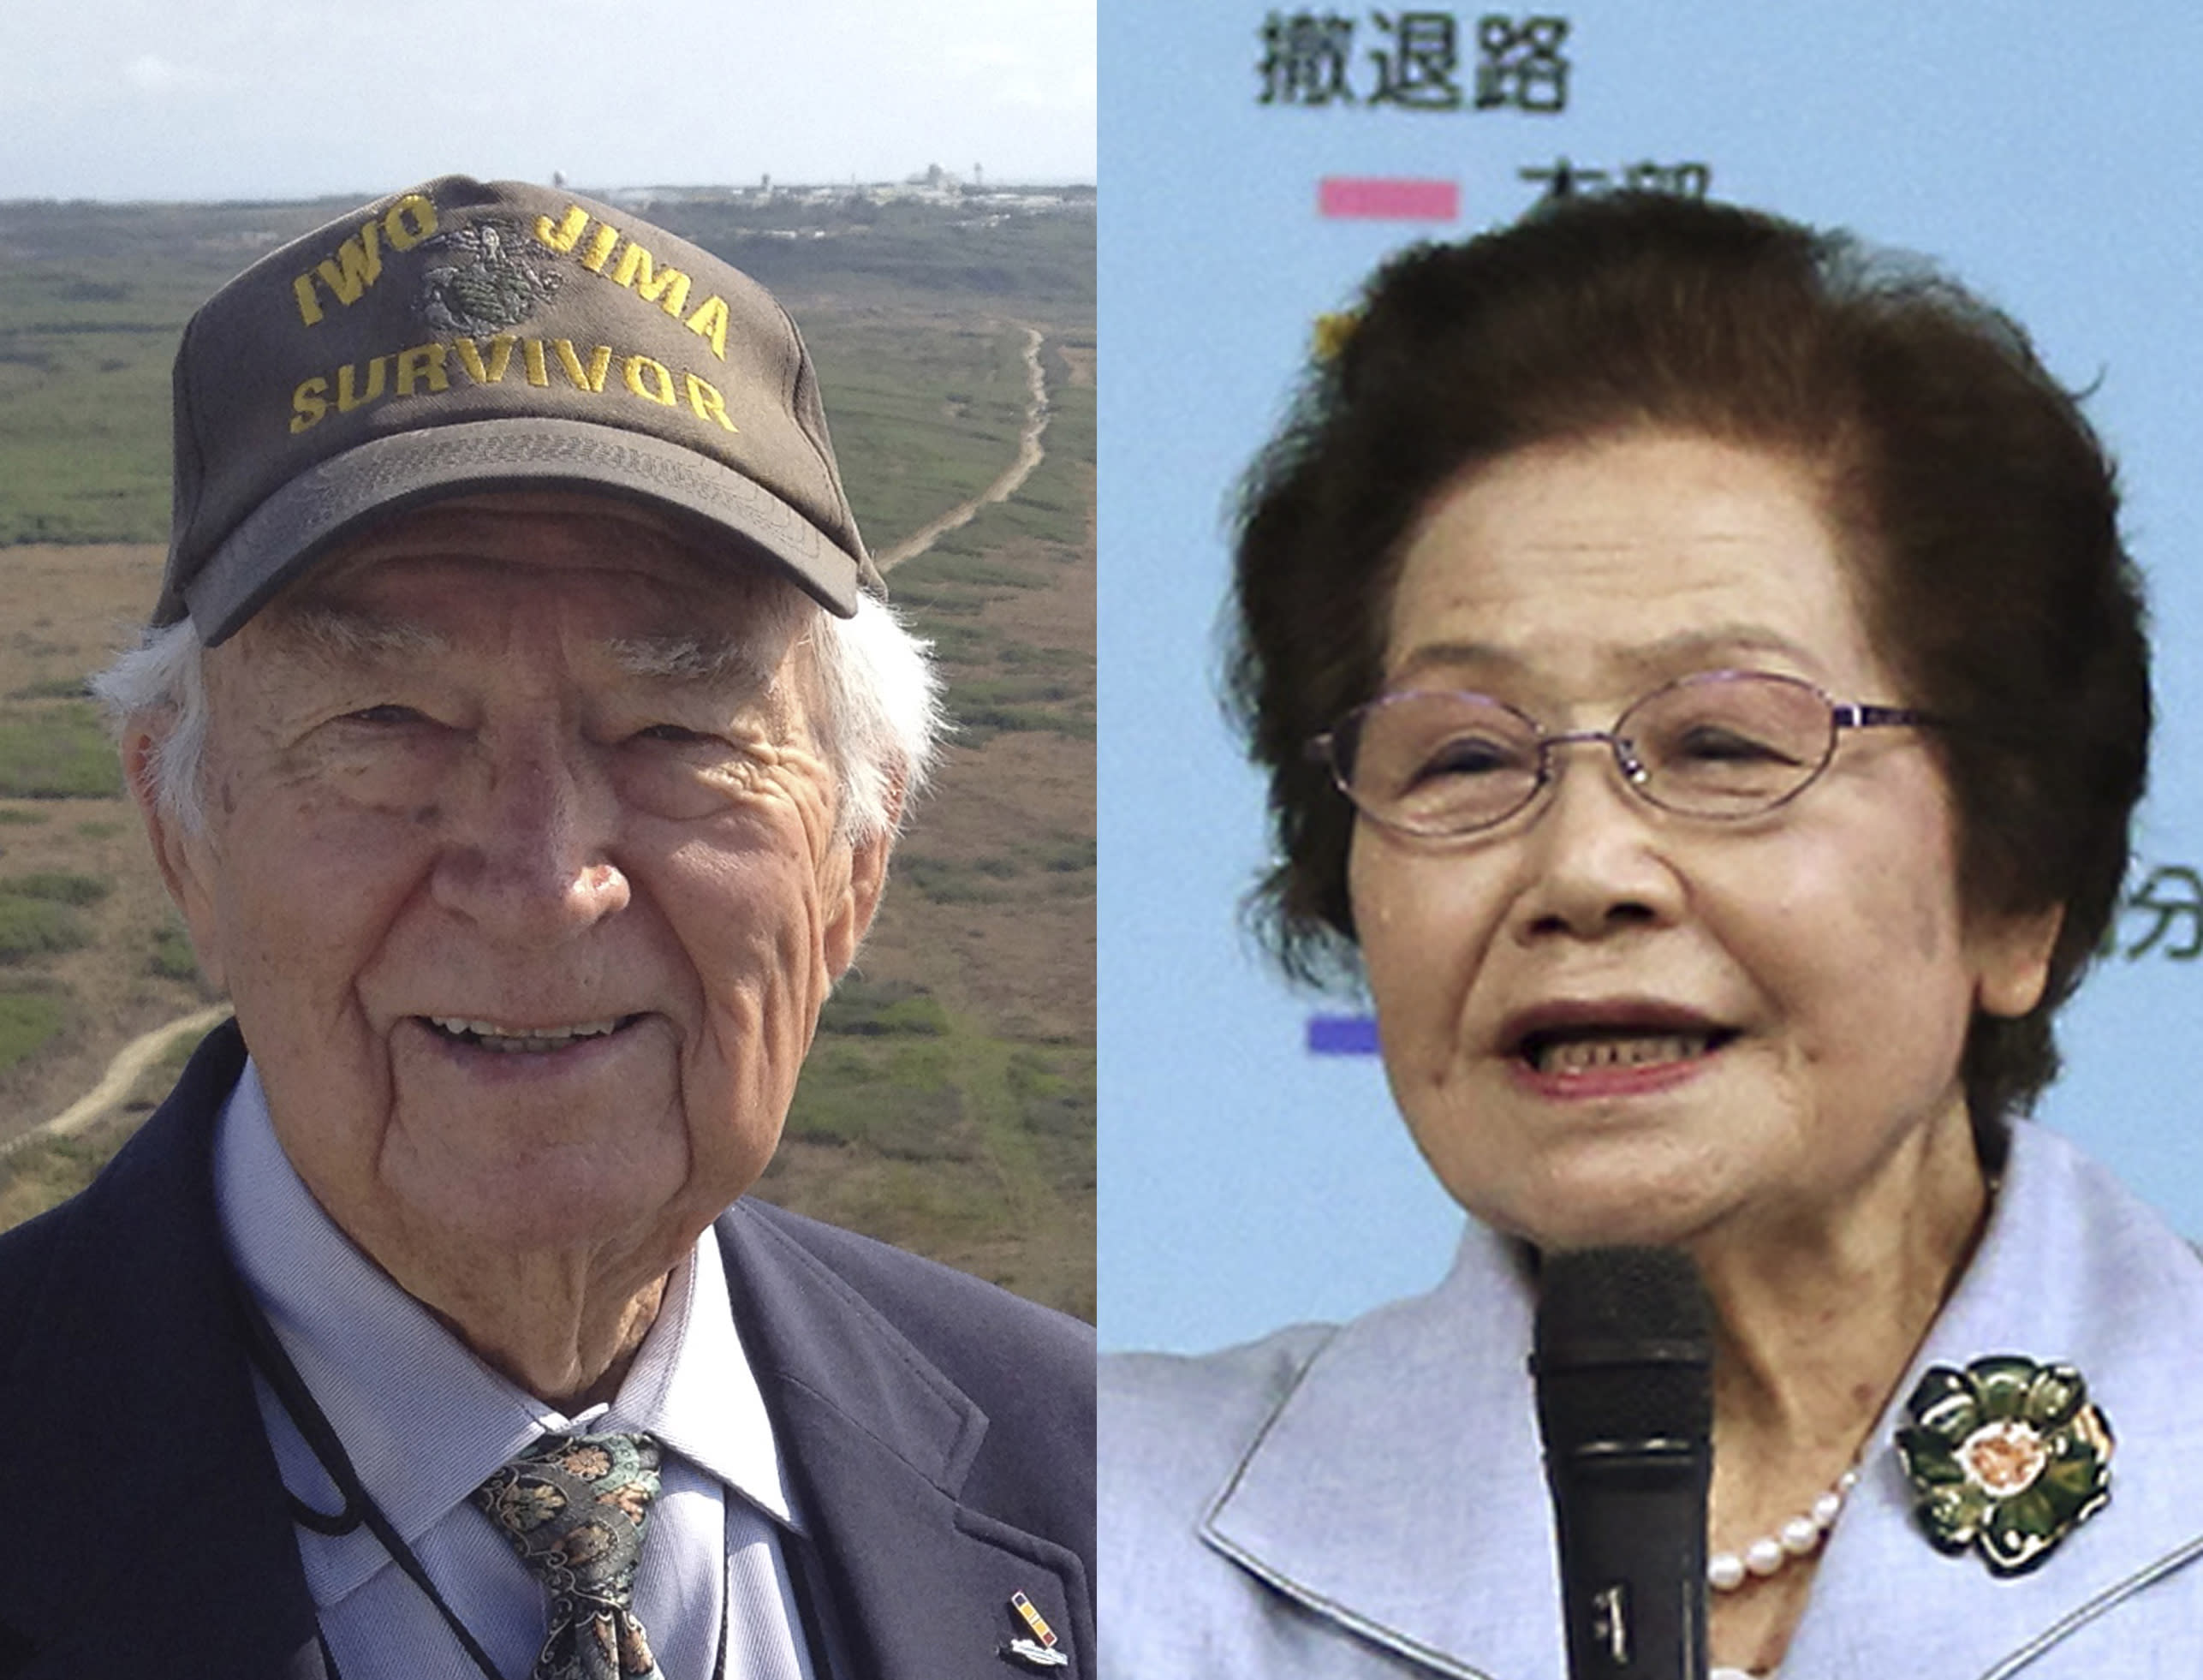 Iwo Jima vet, Okinawa survivor wrestle with WWII legacy